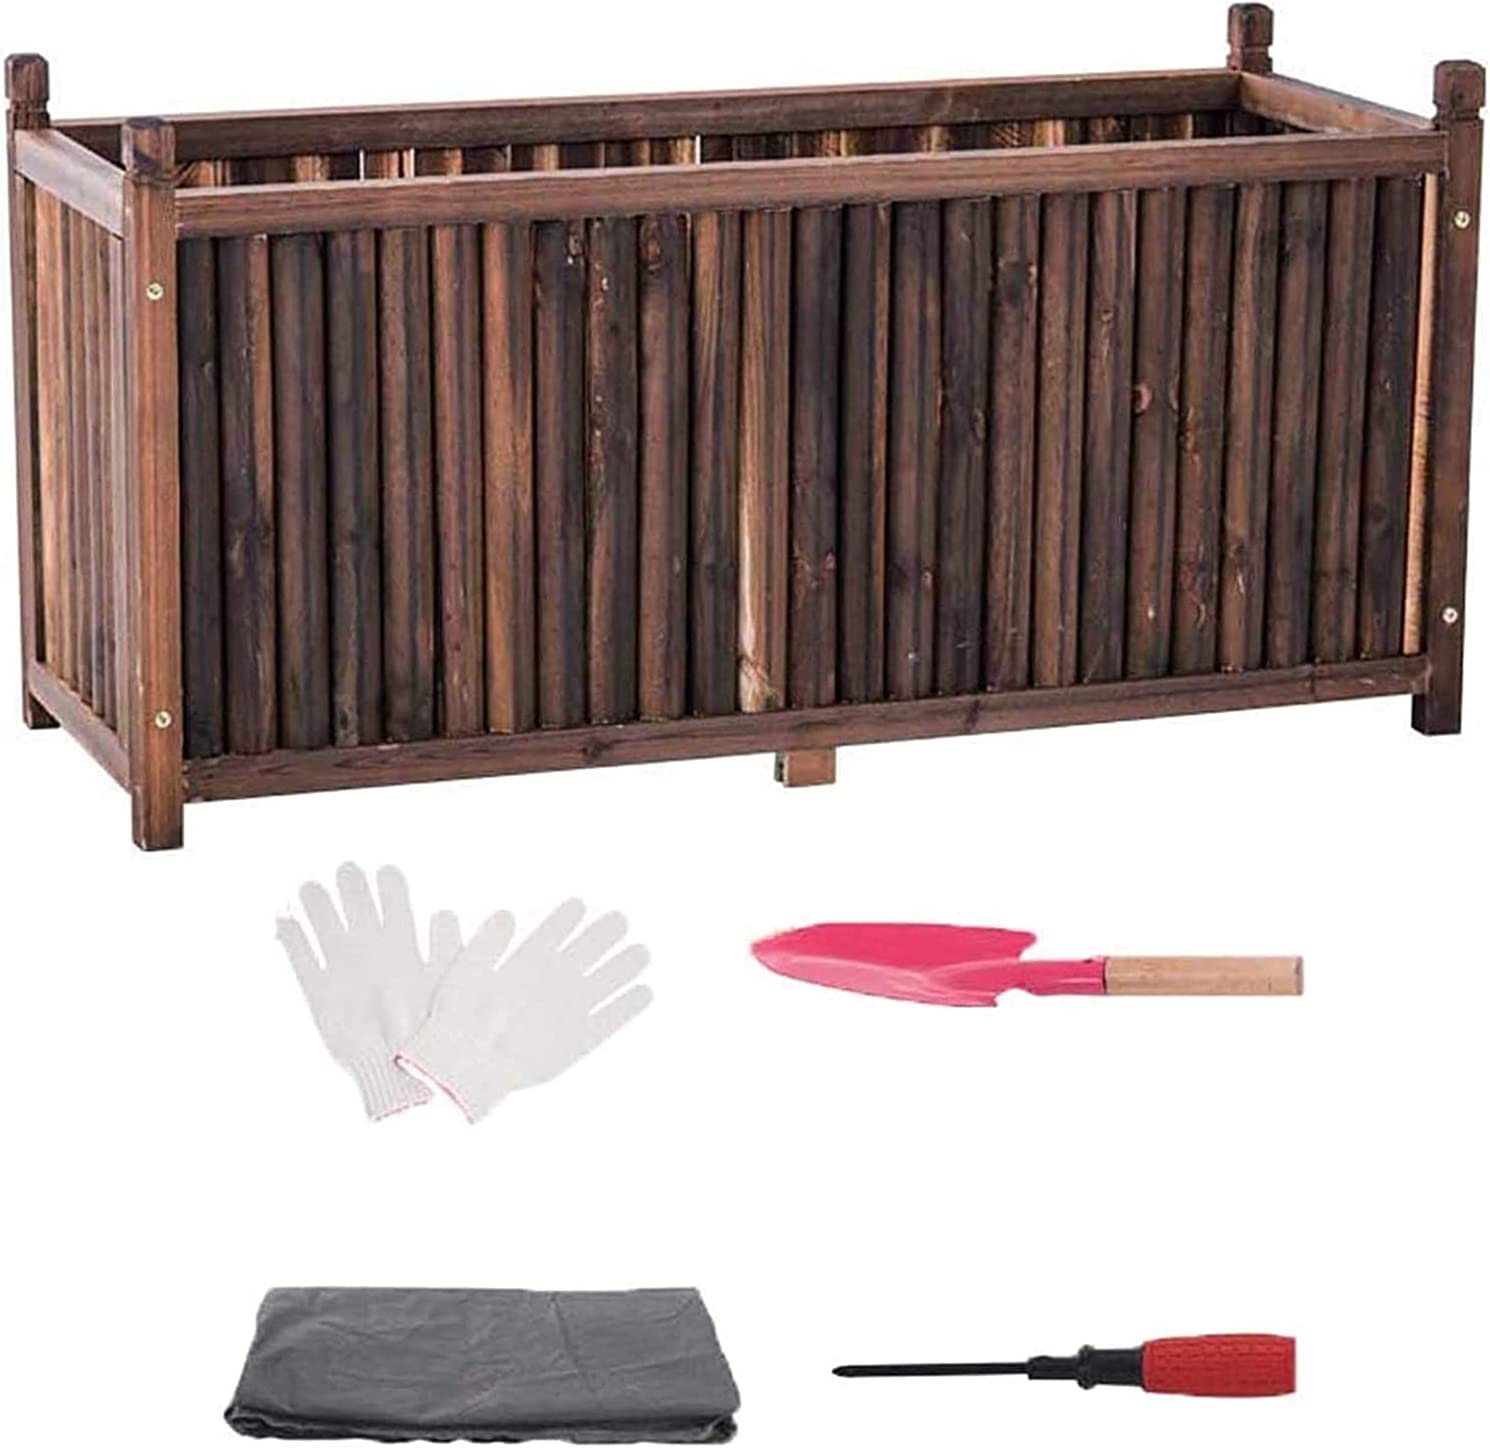 Garden Bed Super-cheap Planter Box Wooden Slot Selling Deep Ant Container Flower